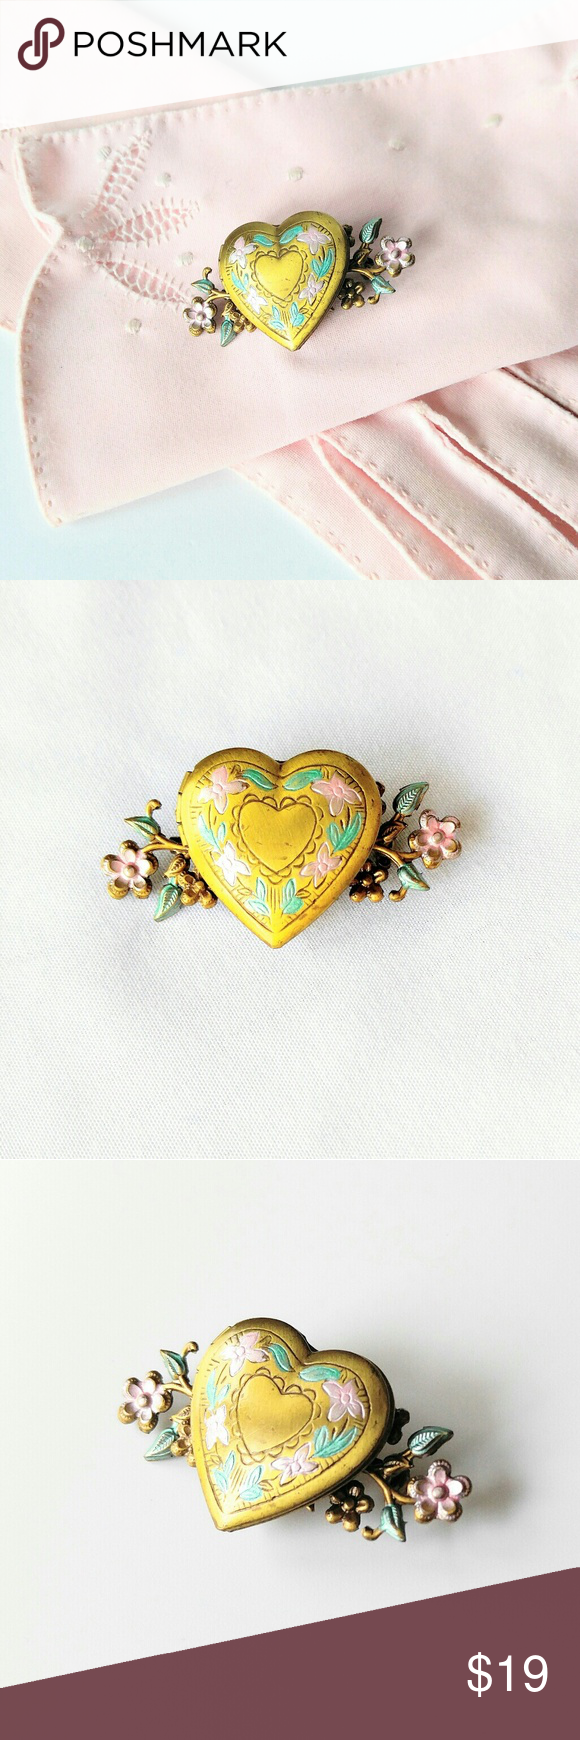 """RARE VINTAGE Heart Locket Brooch-Painted Flowers How lovely this is!  Brass toned with painted flowers and leaves vintage locket brooch.  Just precious! Good vintage condition, but there are a few scuffs to the brass on the locket.  It closes and opens nicely. This piece measures about 2 x 1-1/8"""".  Add as many items to your order as you like.  The shipping stays the same.  PickinChick sells in other online areas, as well as owning a storefront. Vintage Jewelry Brooches"""